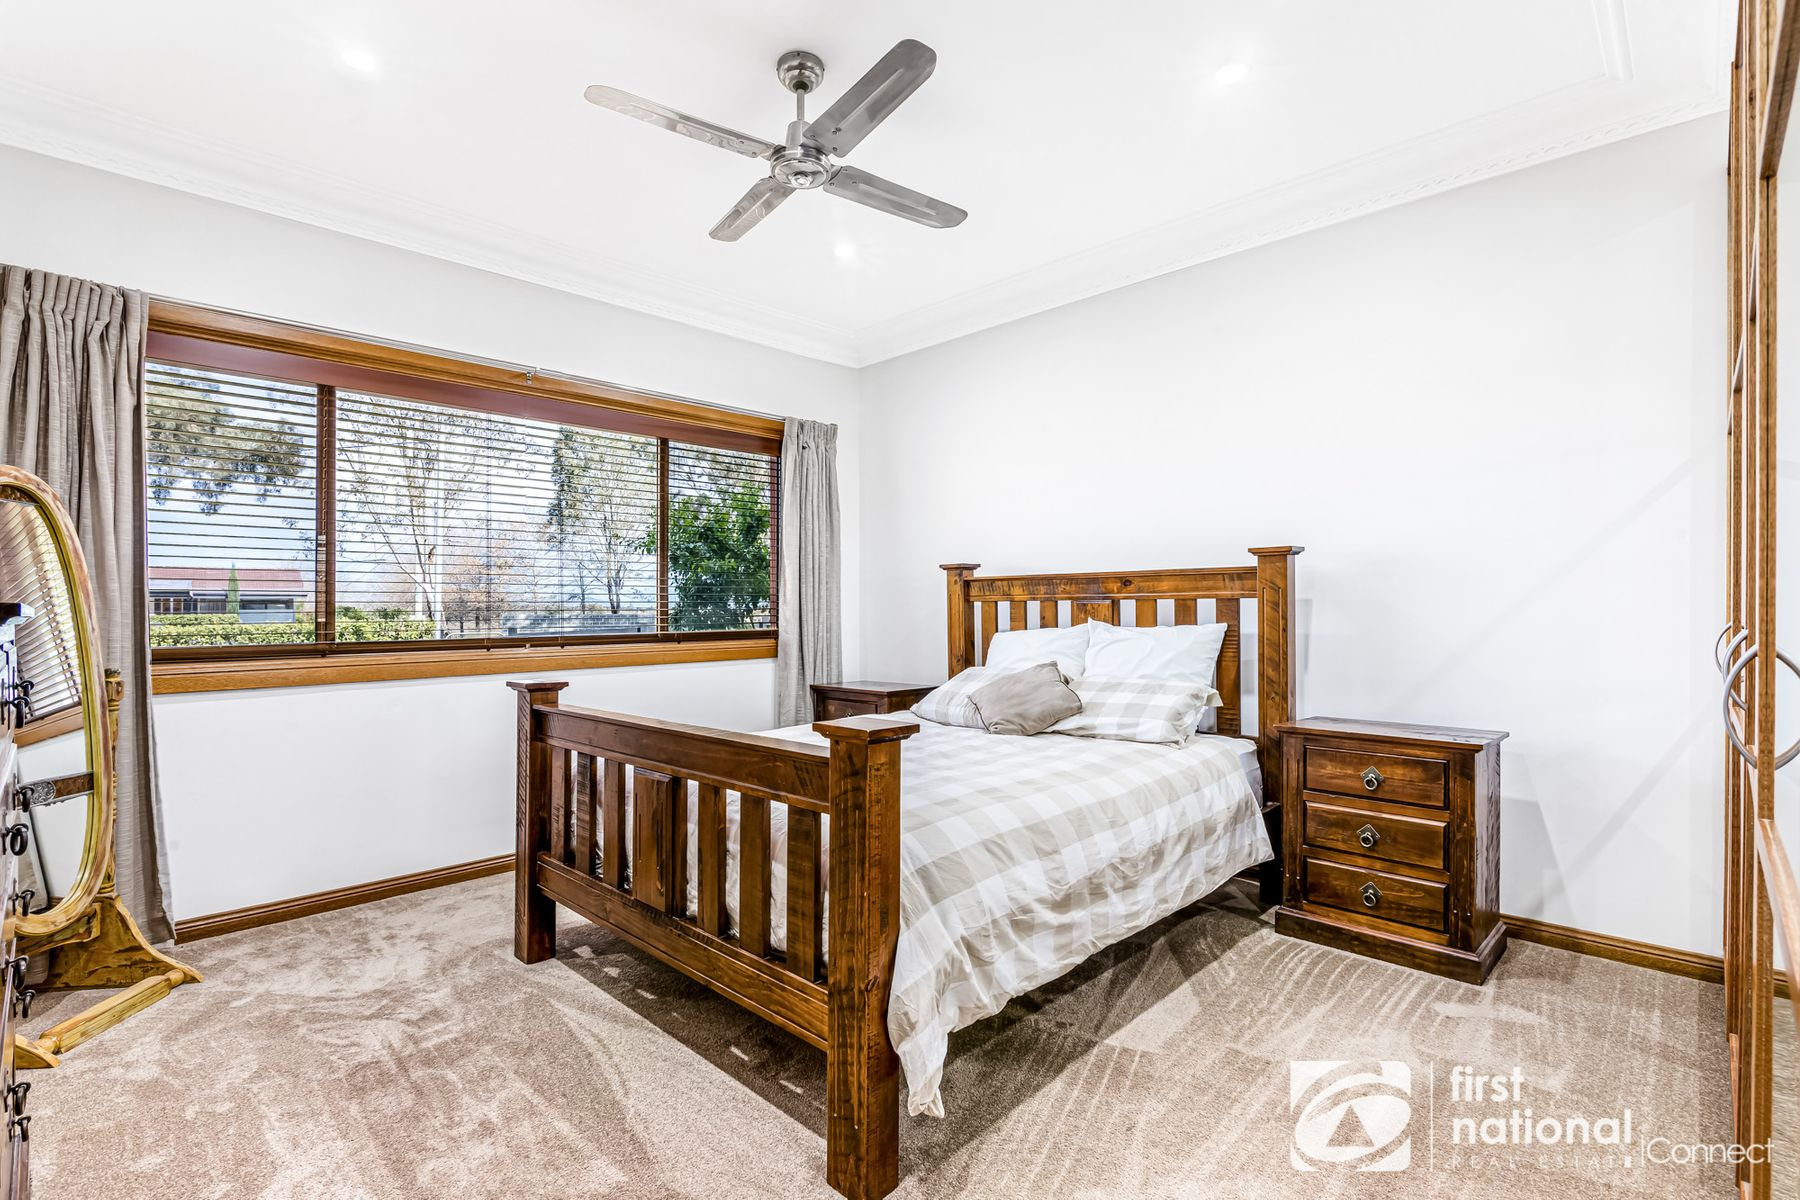 225 Sackville Rd, Wilberforce, NSW 2756